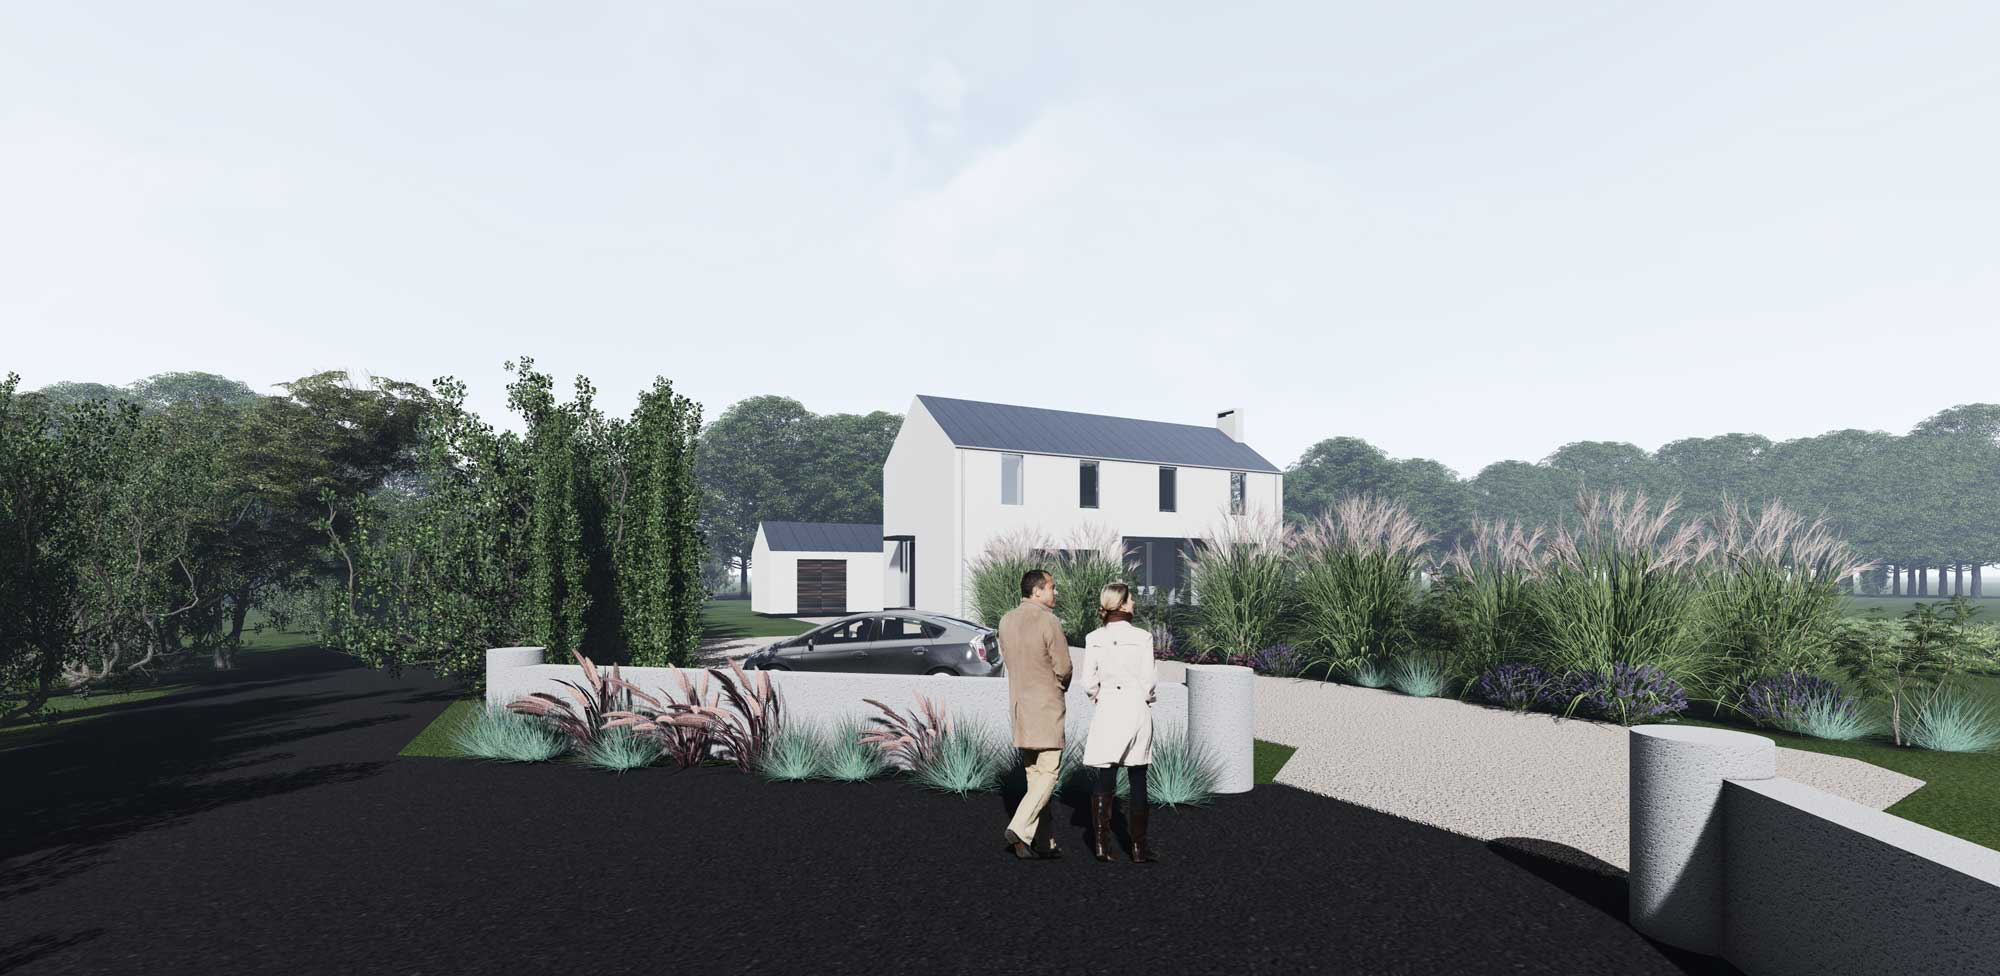 New design for one off house in Co. Meath. Planning granted